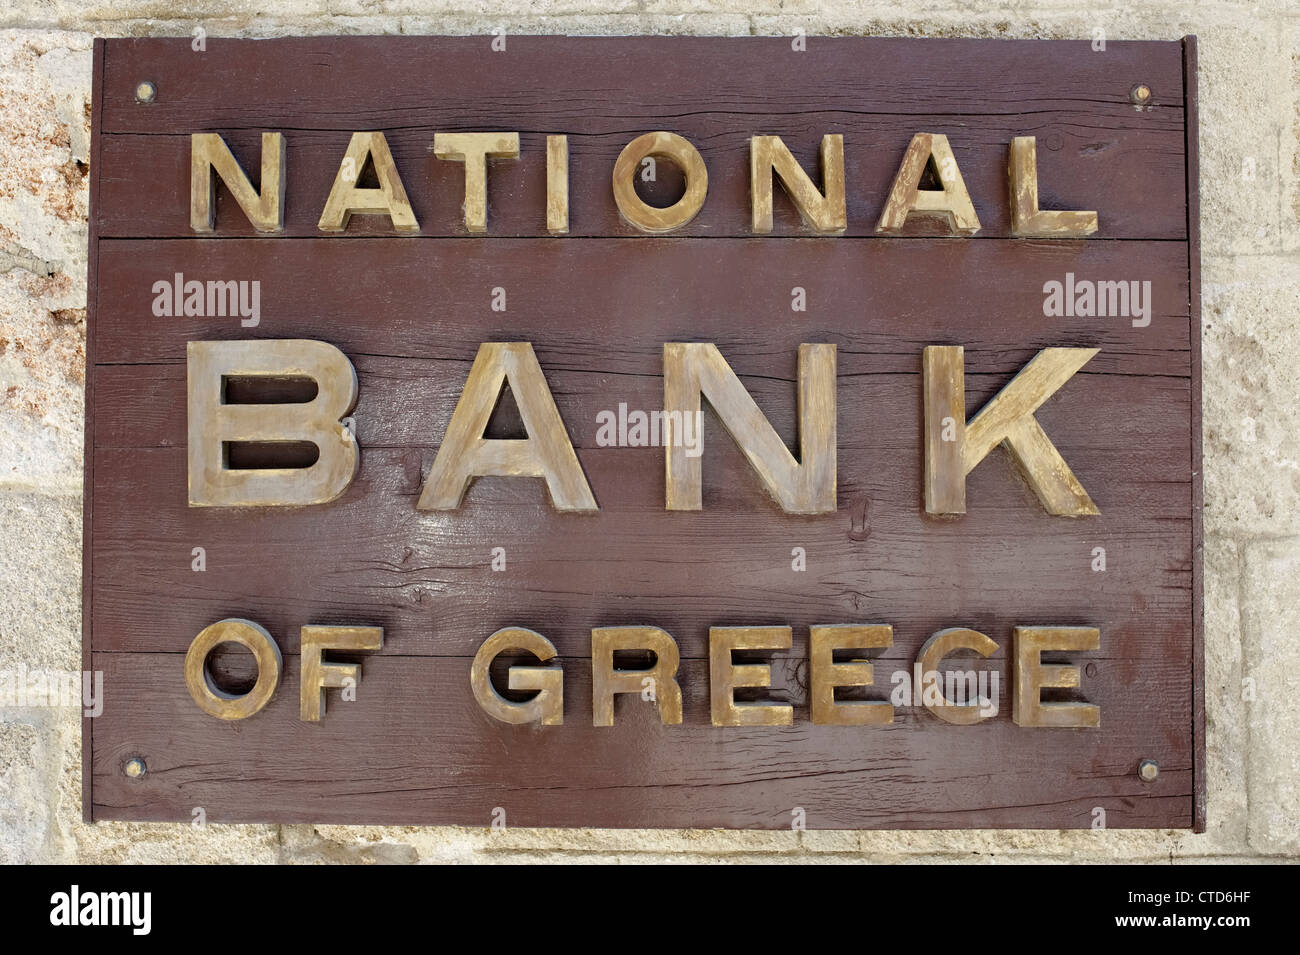 Signboard of national Bank of Greek - Stock Image